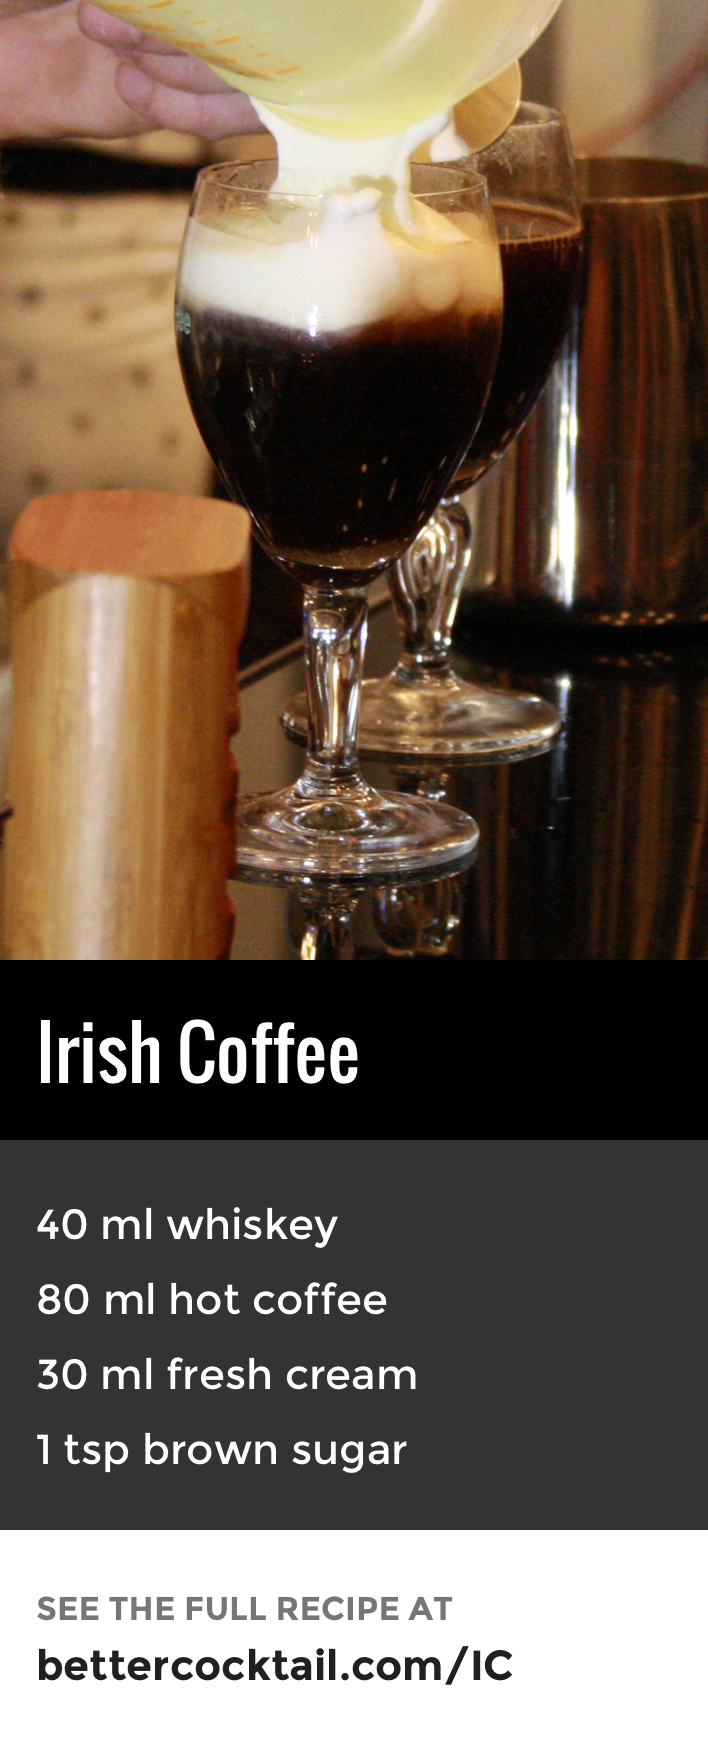 The Irish Coffee is somewhat different to a stereotypical cocktail. The drink is served hot, made with freshly brewed coffee and is topped with thick cream. More